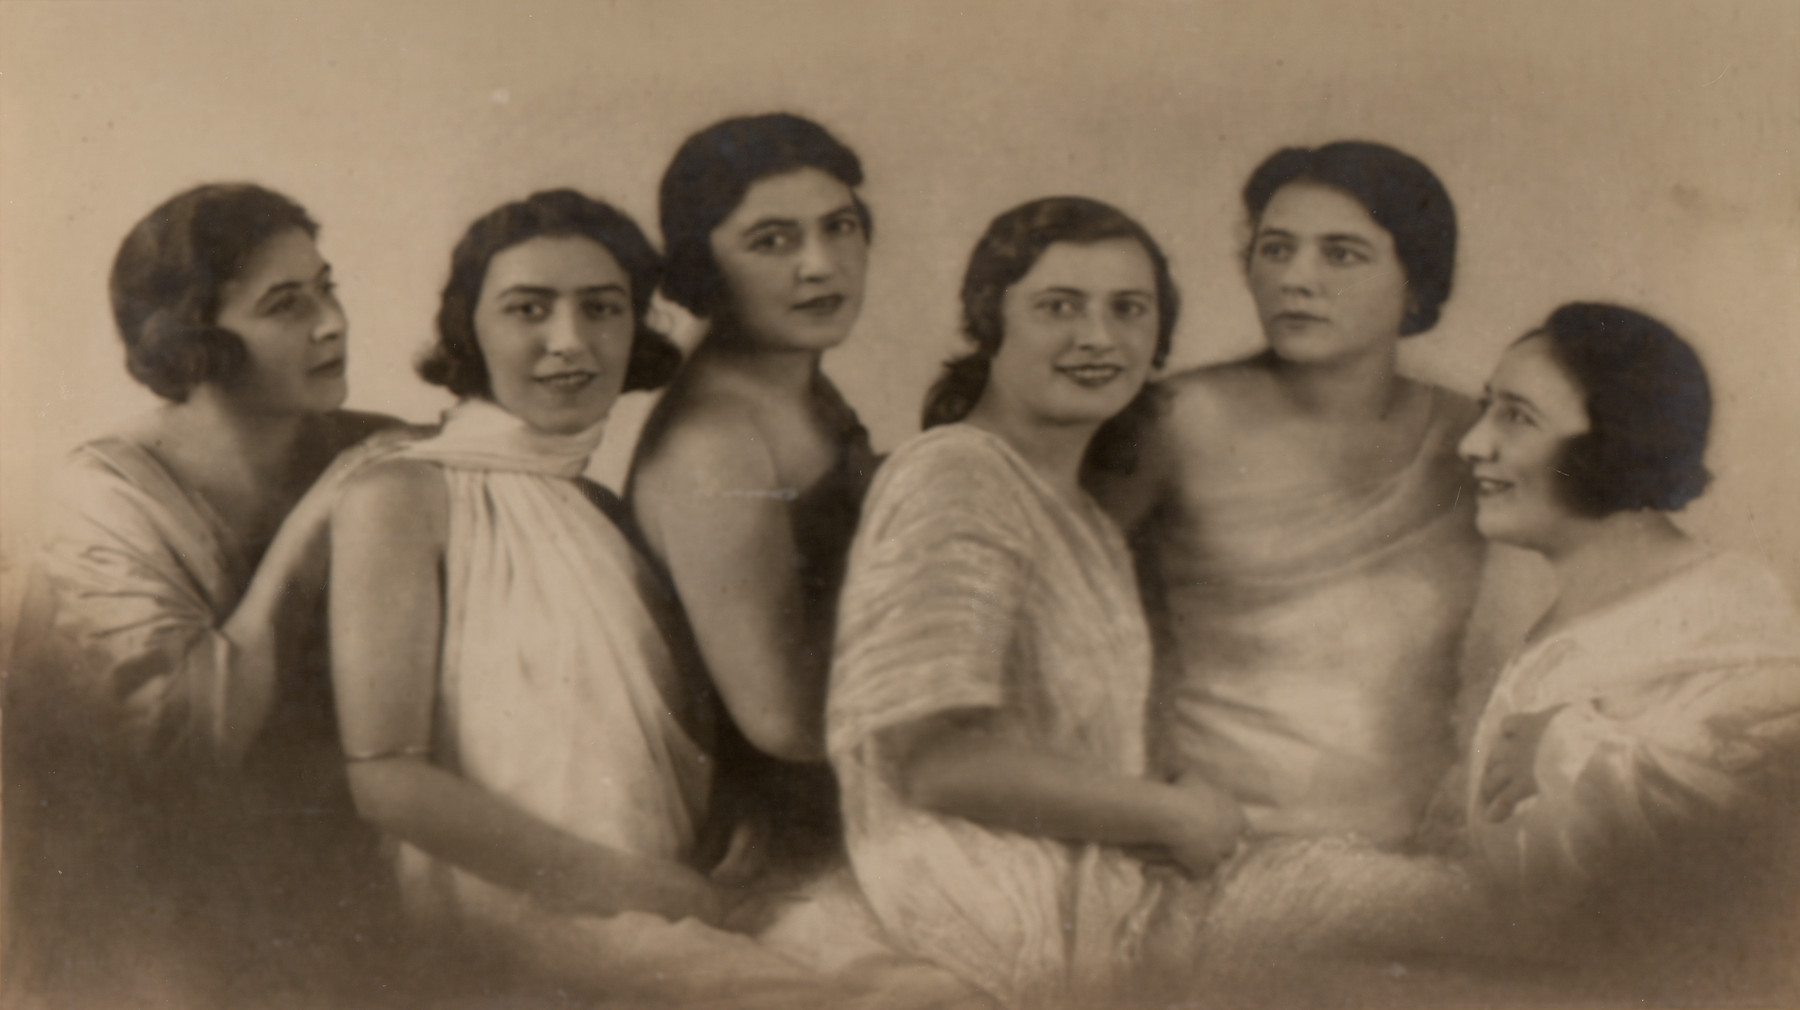 Studio portrait of the Stoessler sisters, a prosperous Austrian-Jewish family.   Pictured from left to right are Frida, Erna, Stella, Greta, Emma and Vali.